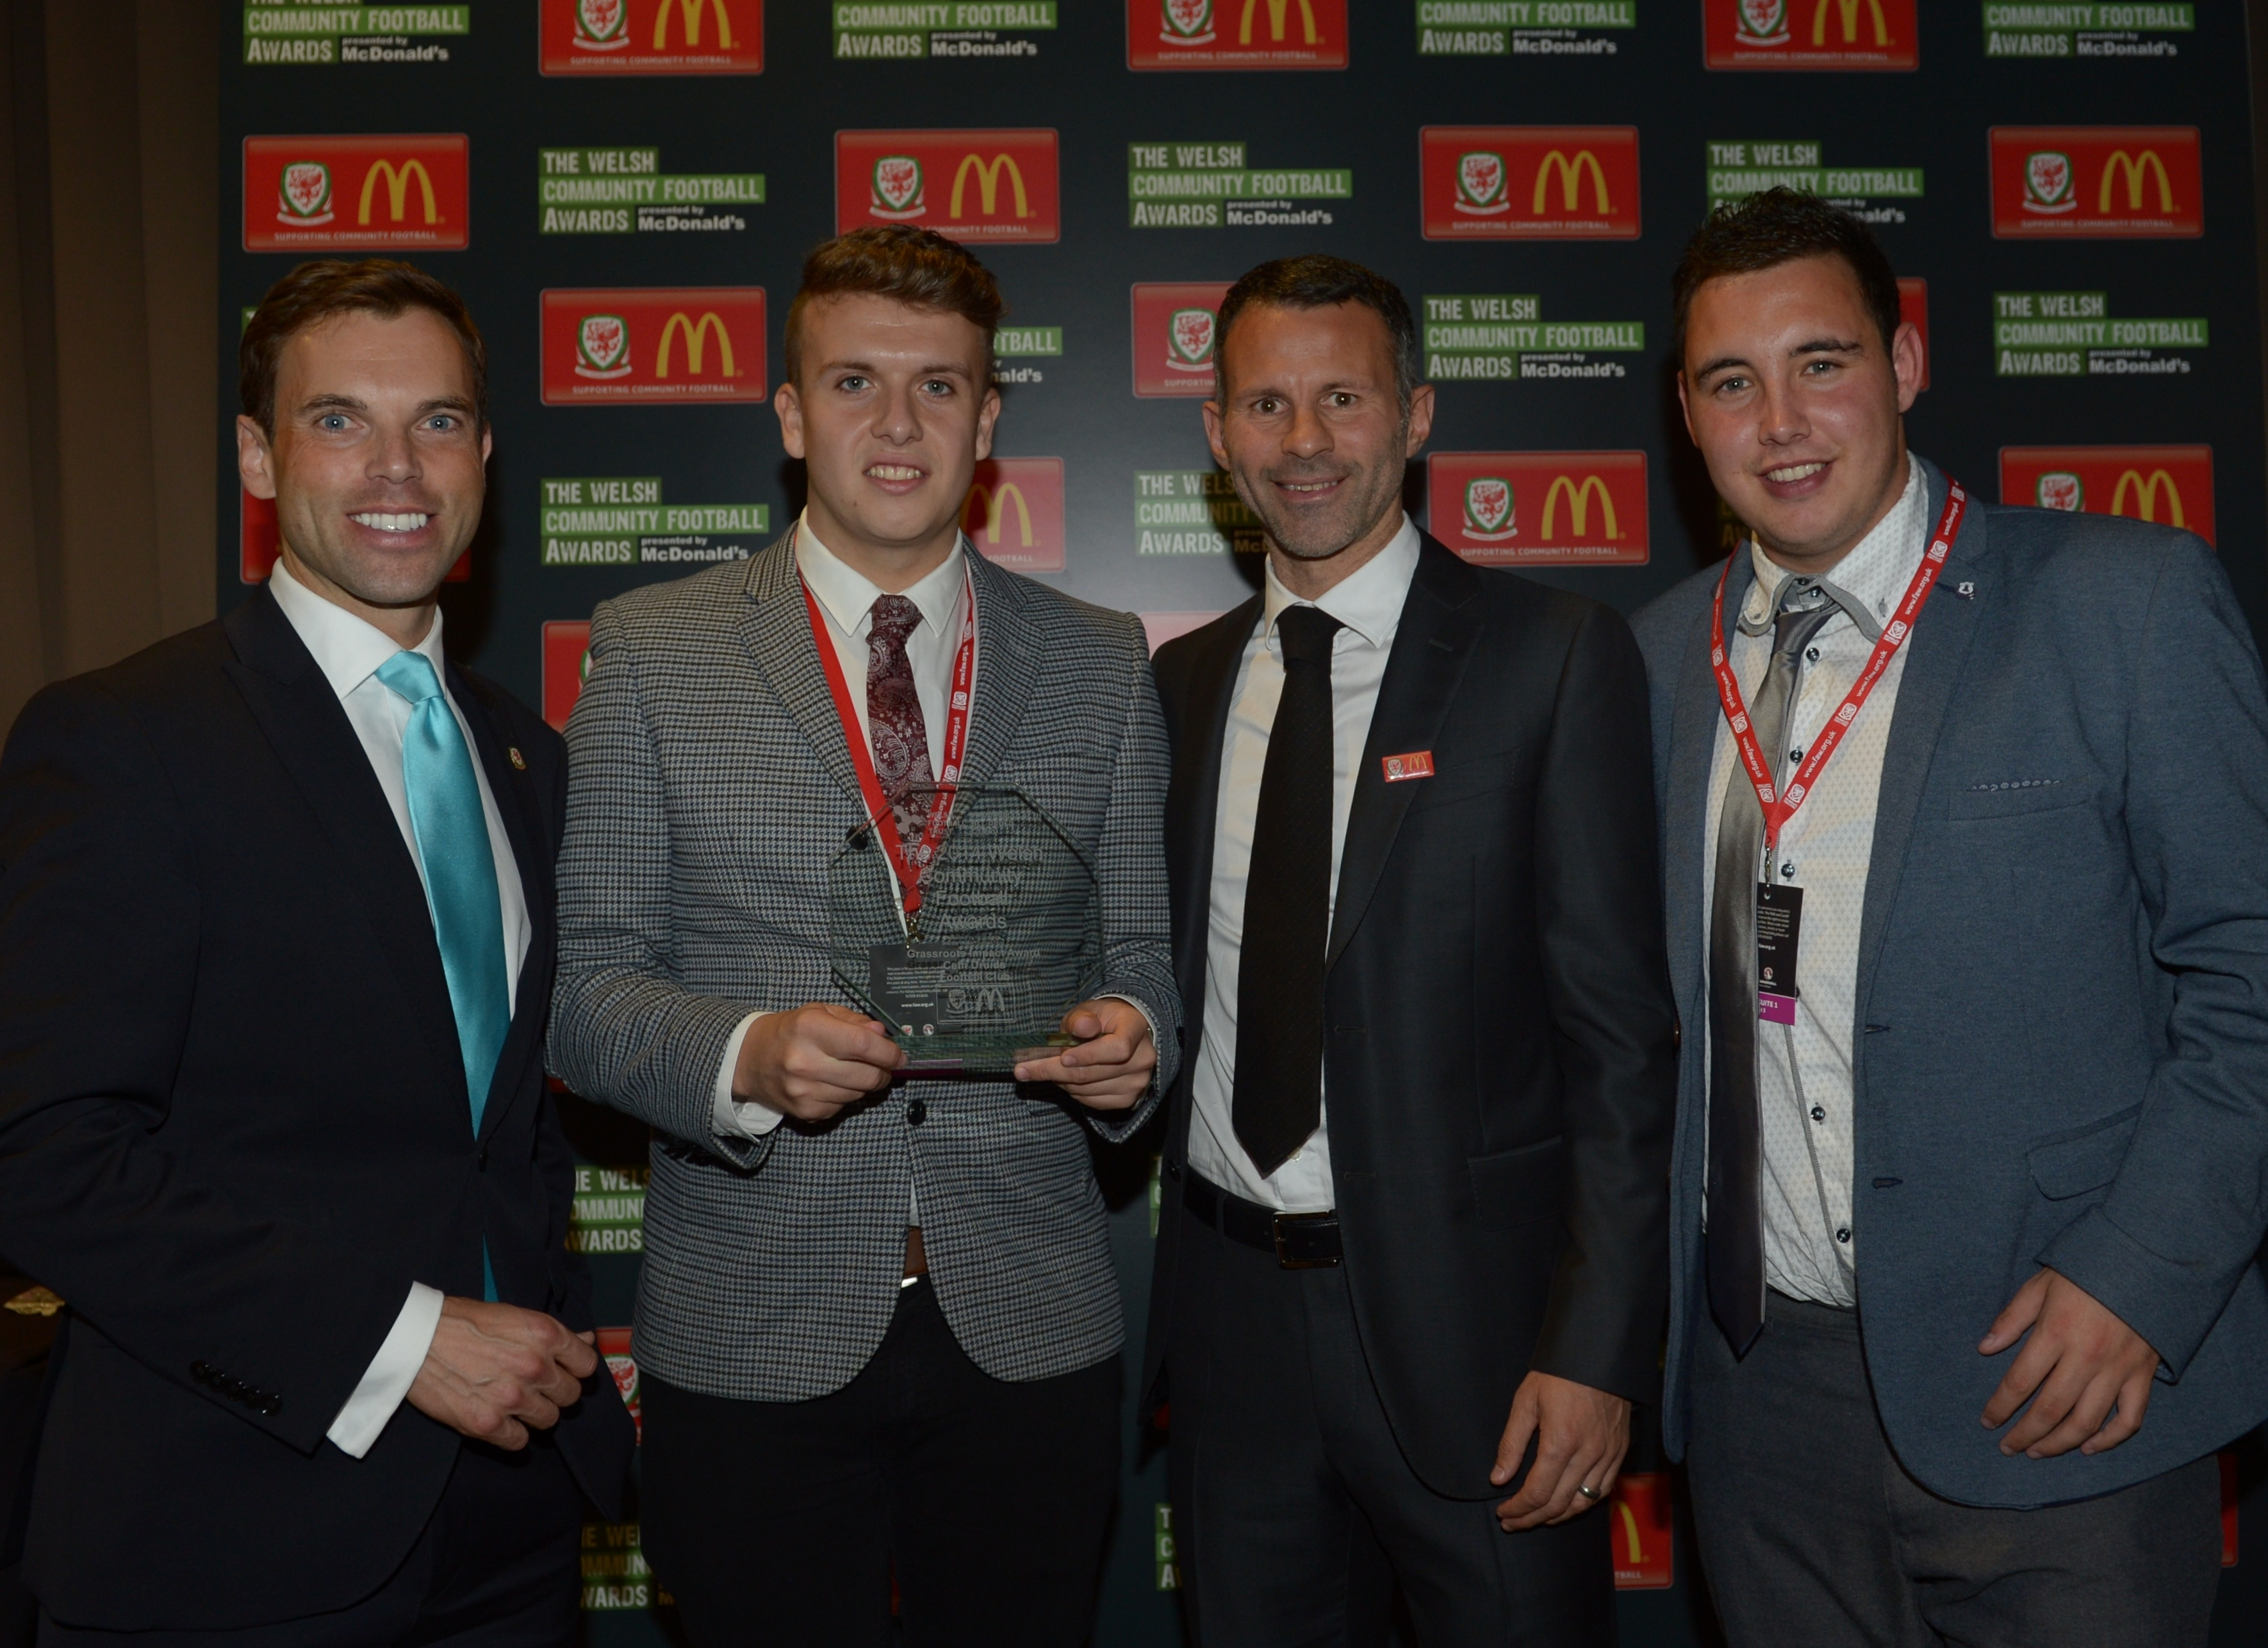 WREXHAM FOOTBALL HEROES COLLECT NATIONAL FOOTBALL AWARD